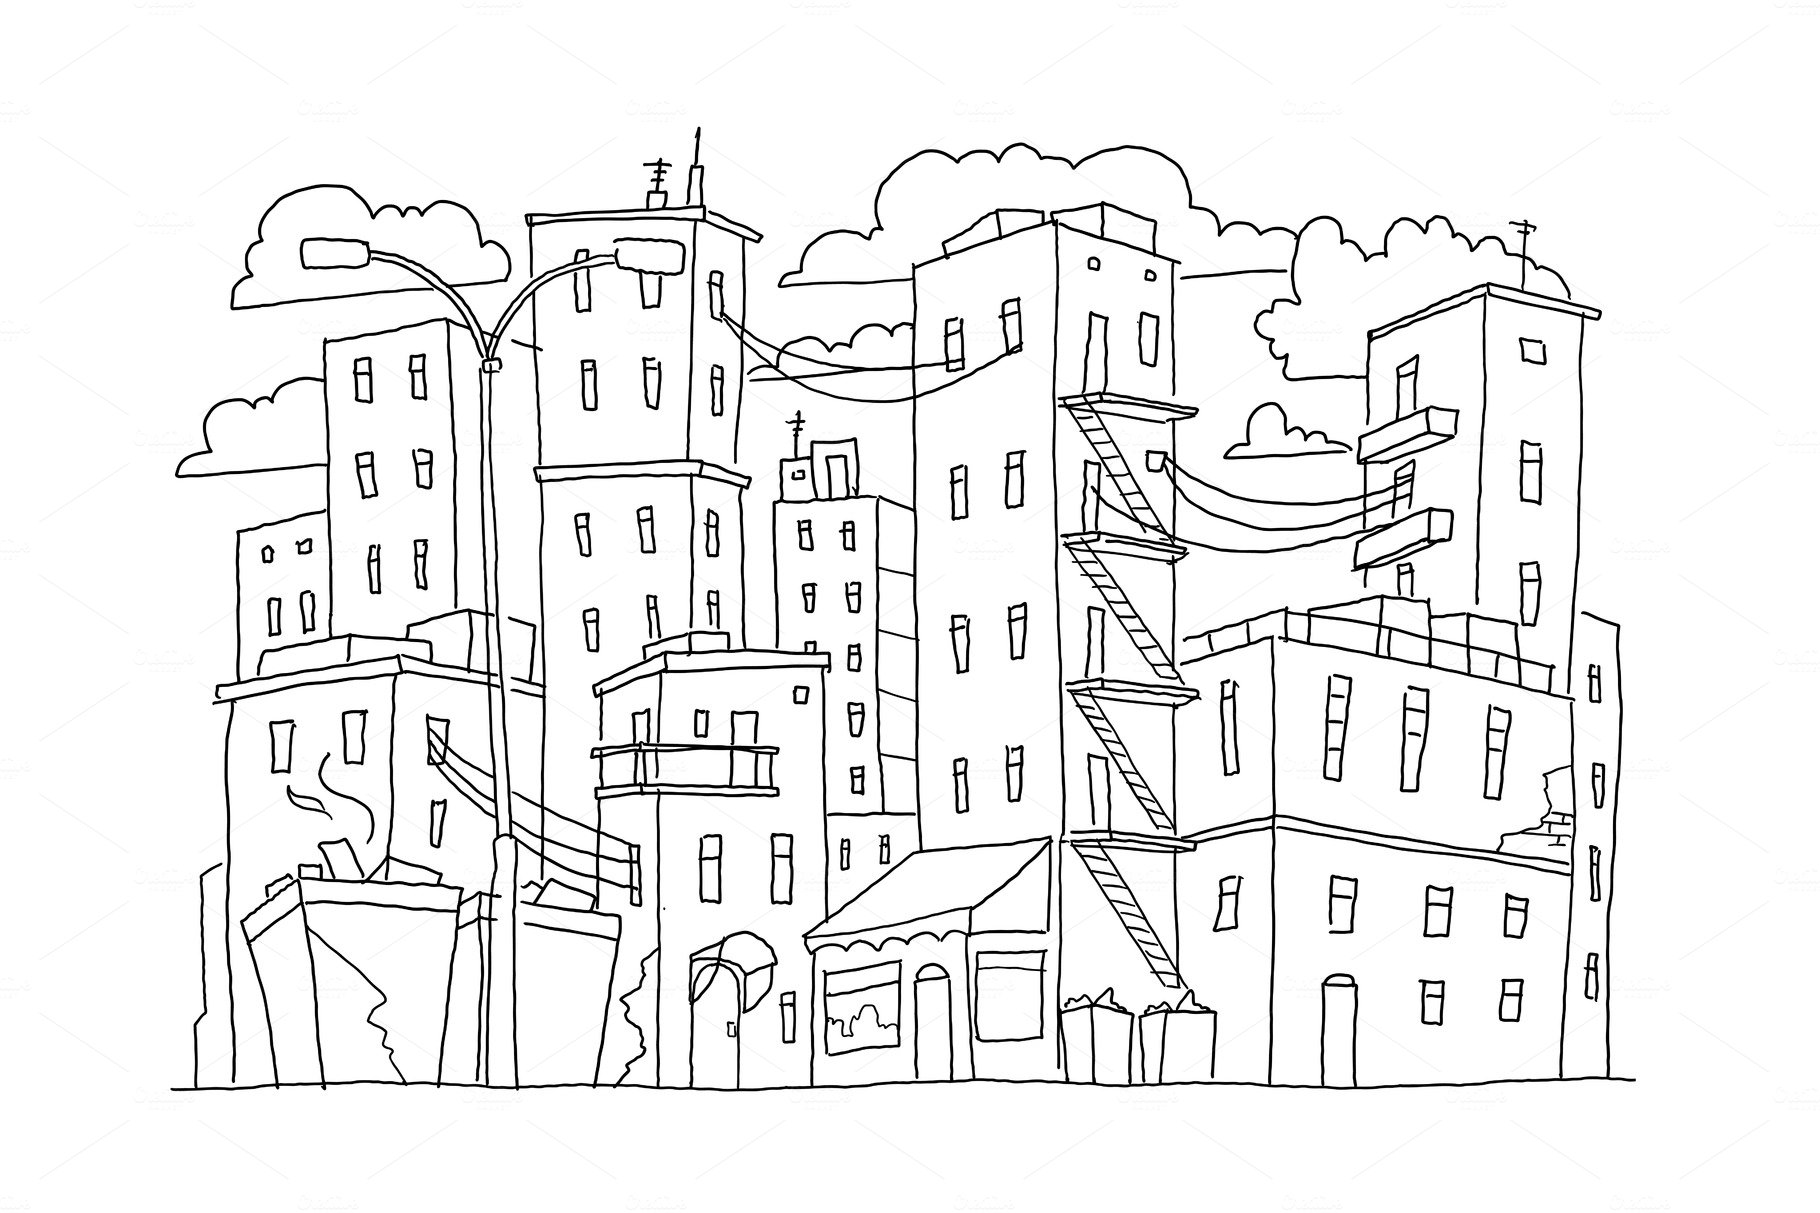 Old city buildings sketch town. Houses multistory outdoors